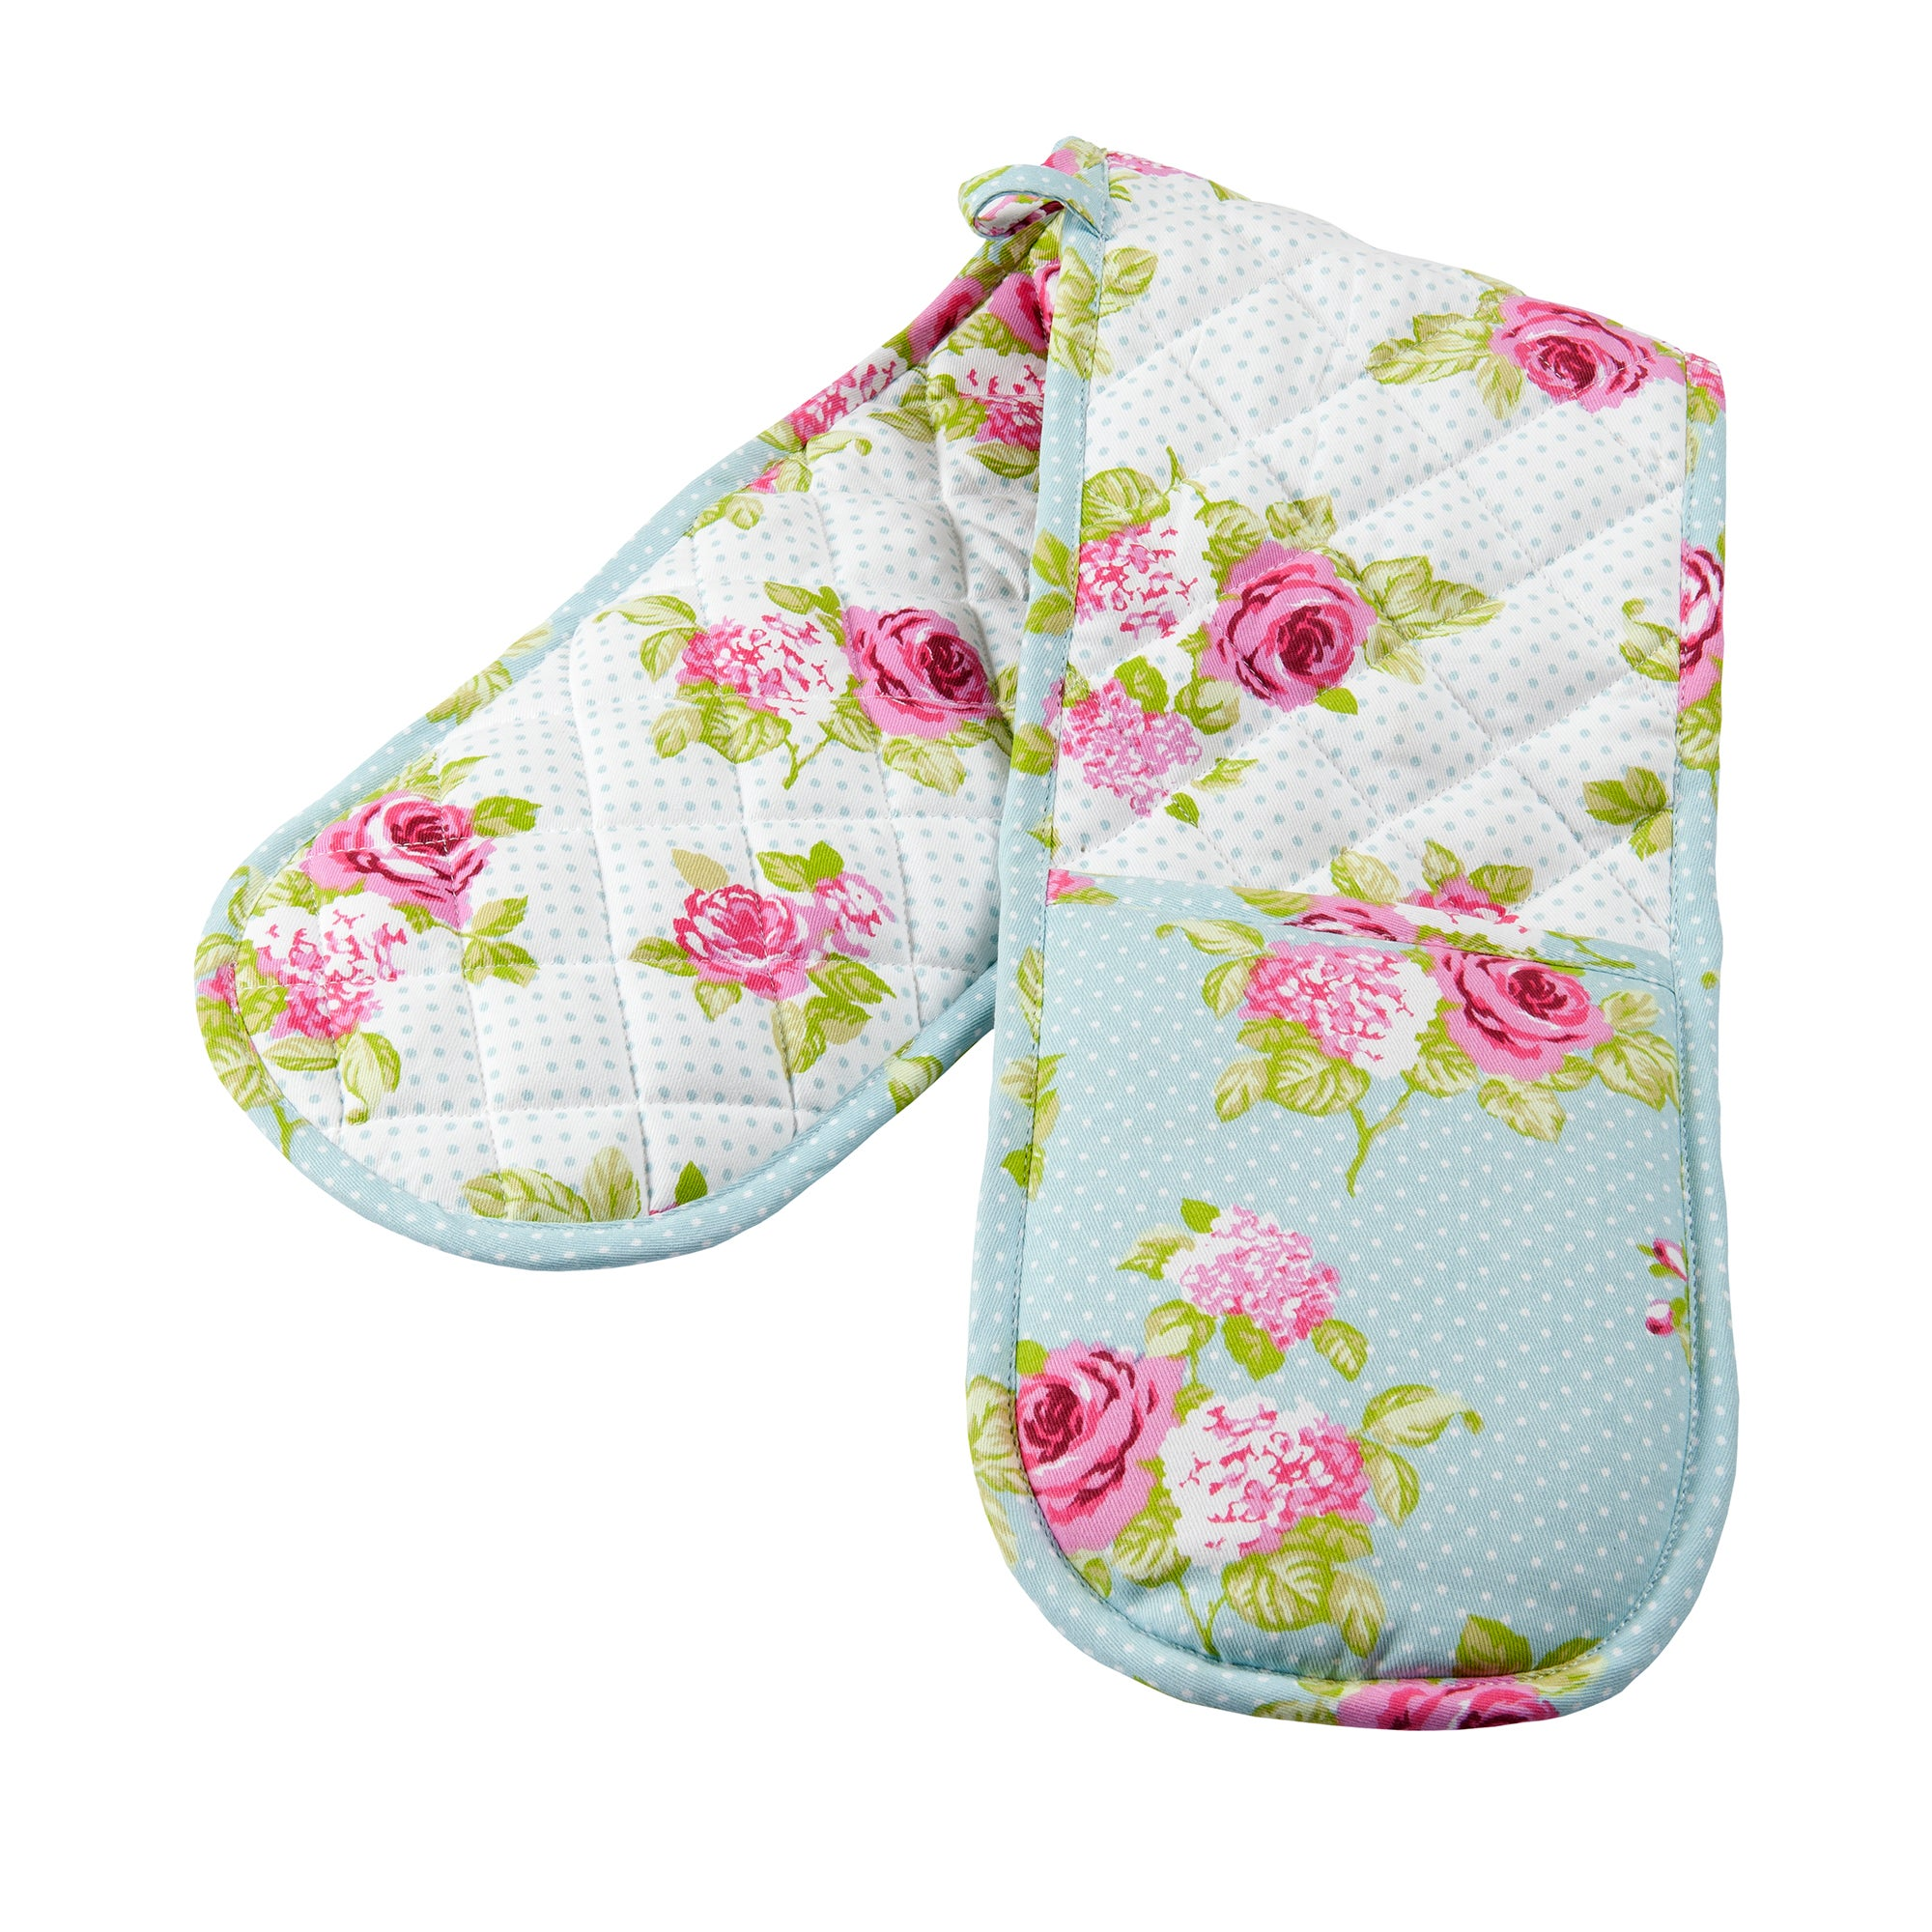 Rose and Ellis Clarendon Collection Double Oven Glove